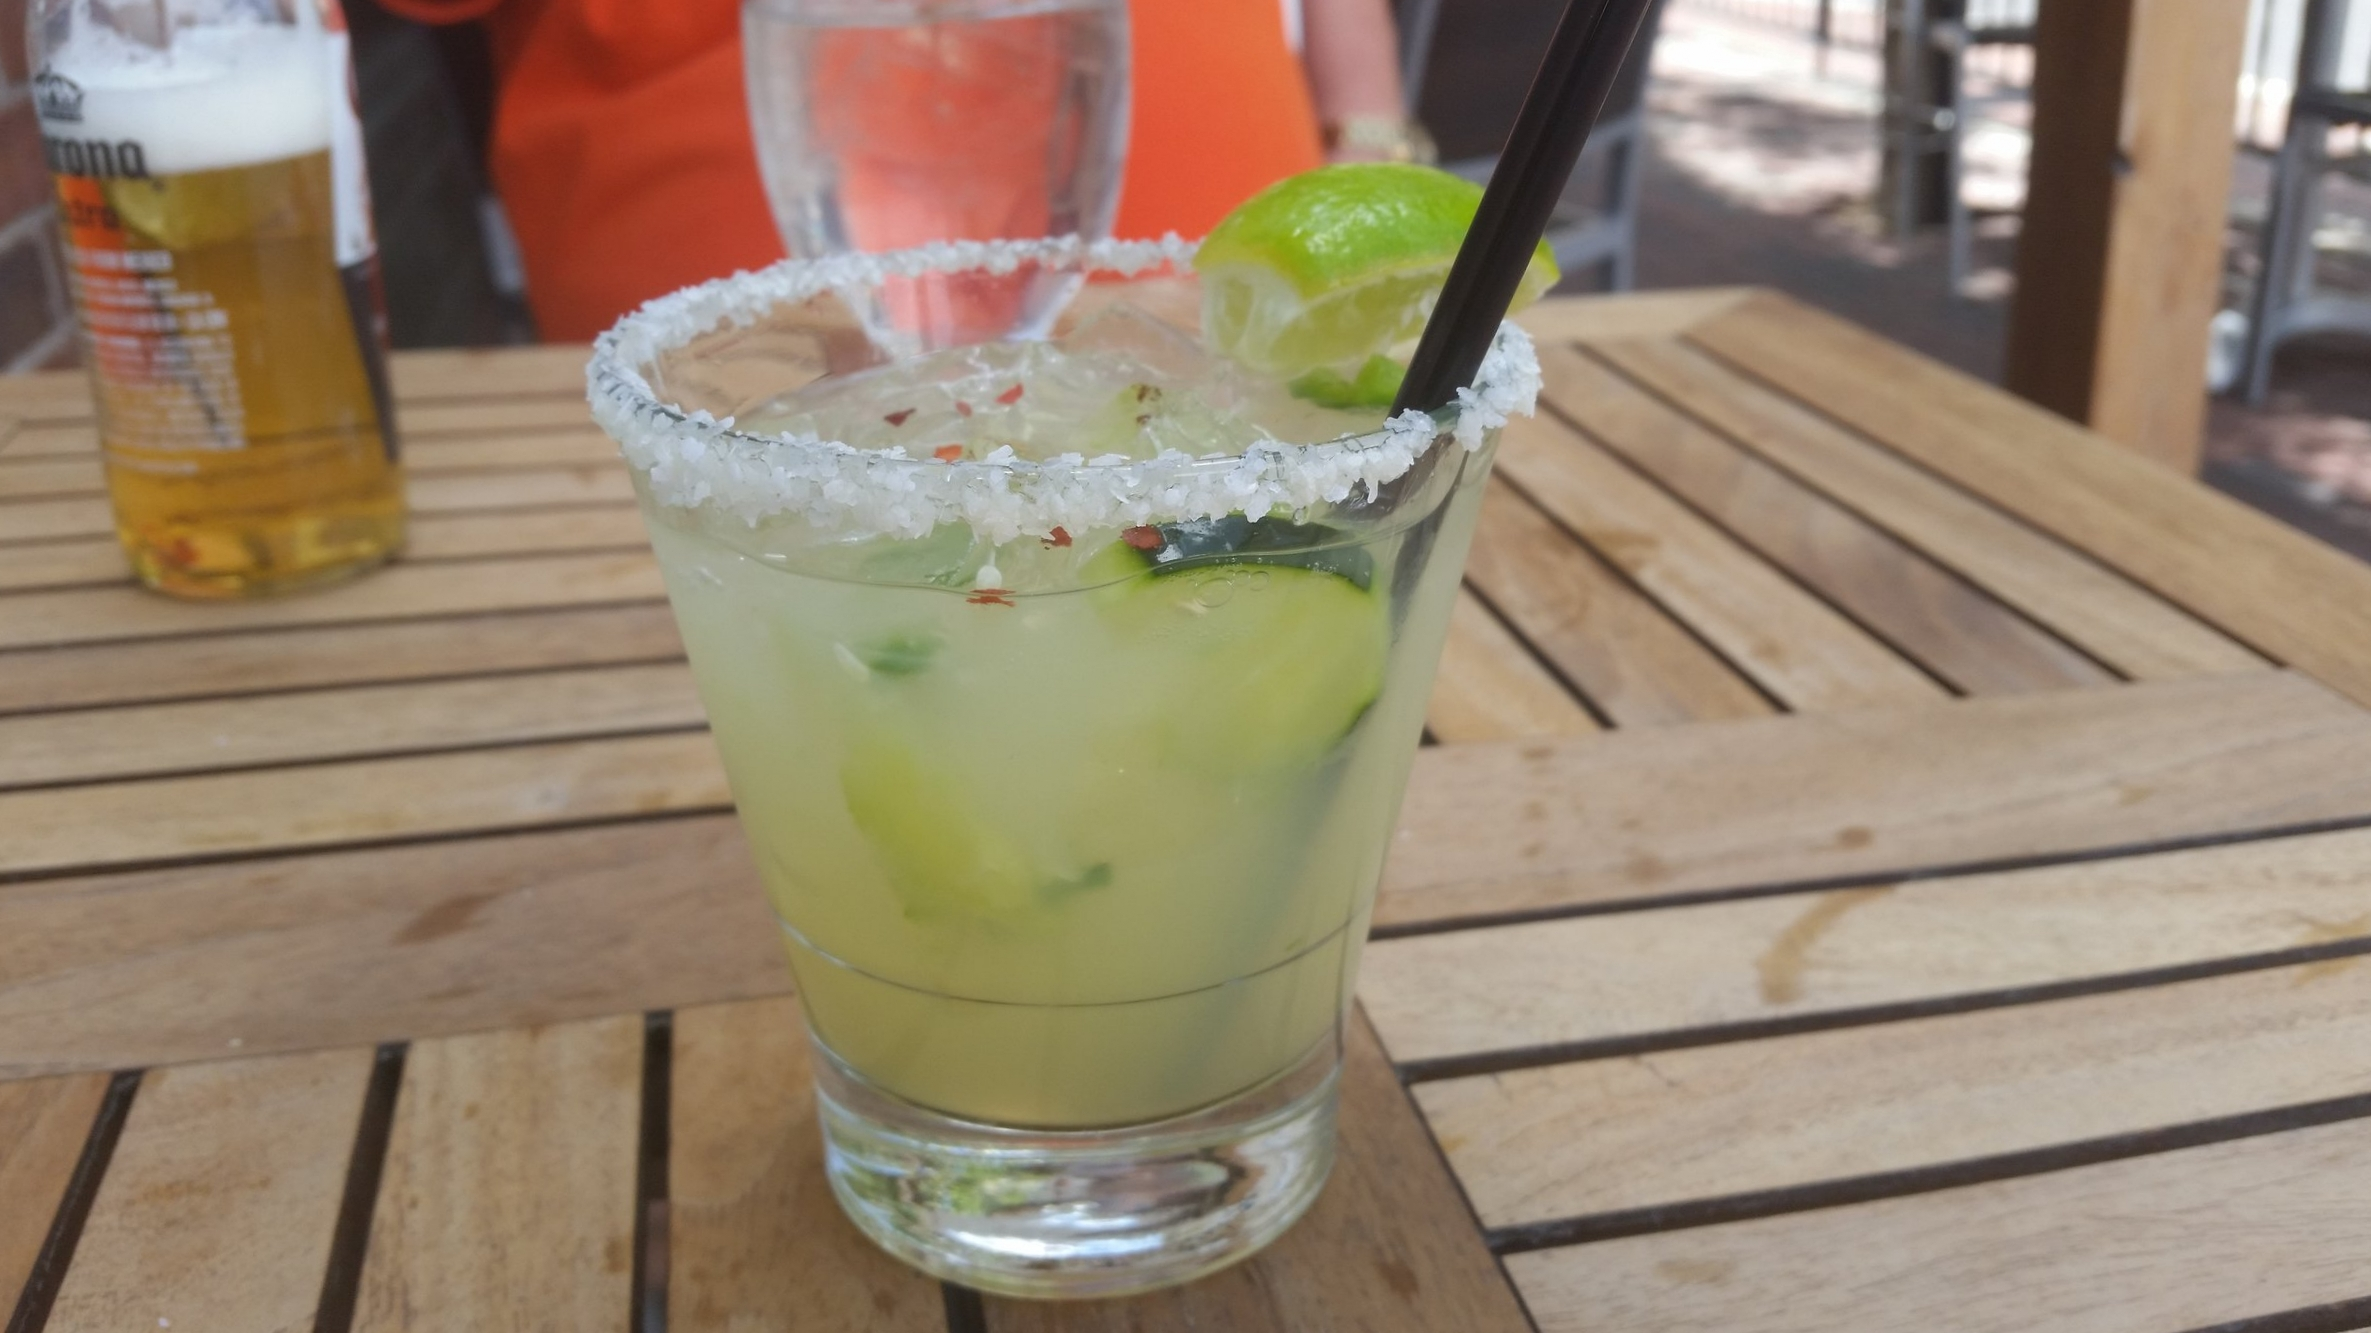 Cucumber and jalapeno margarita